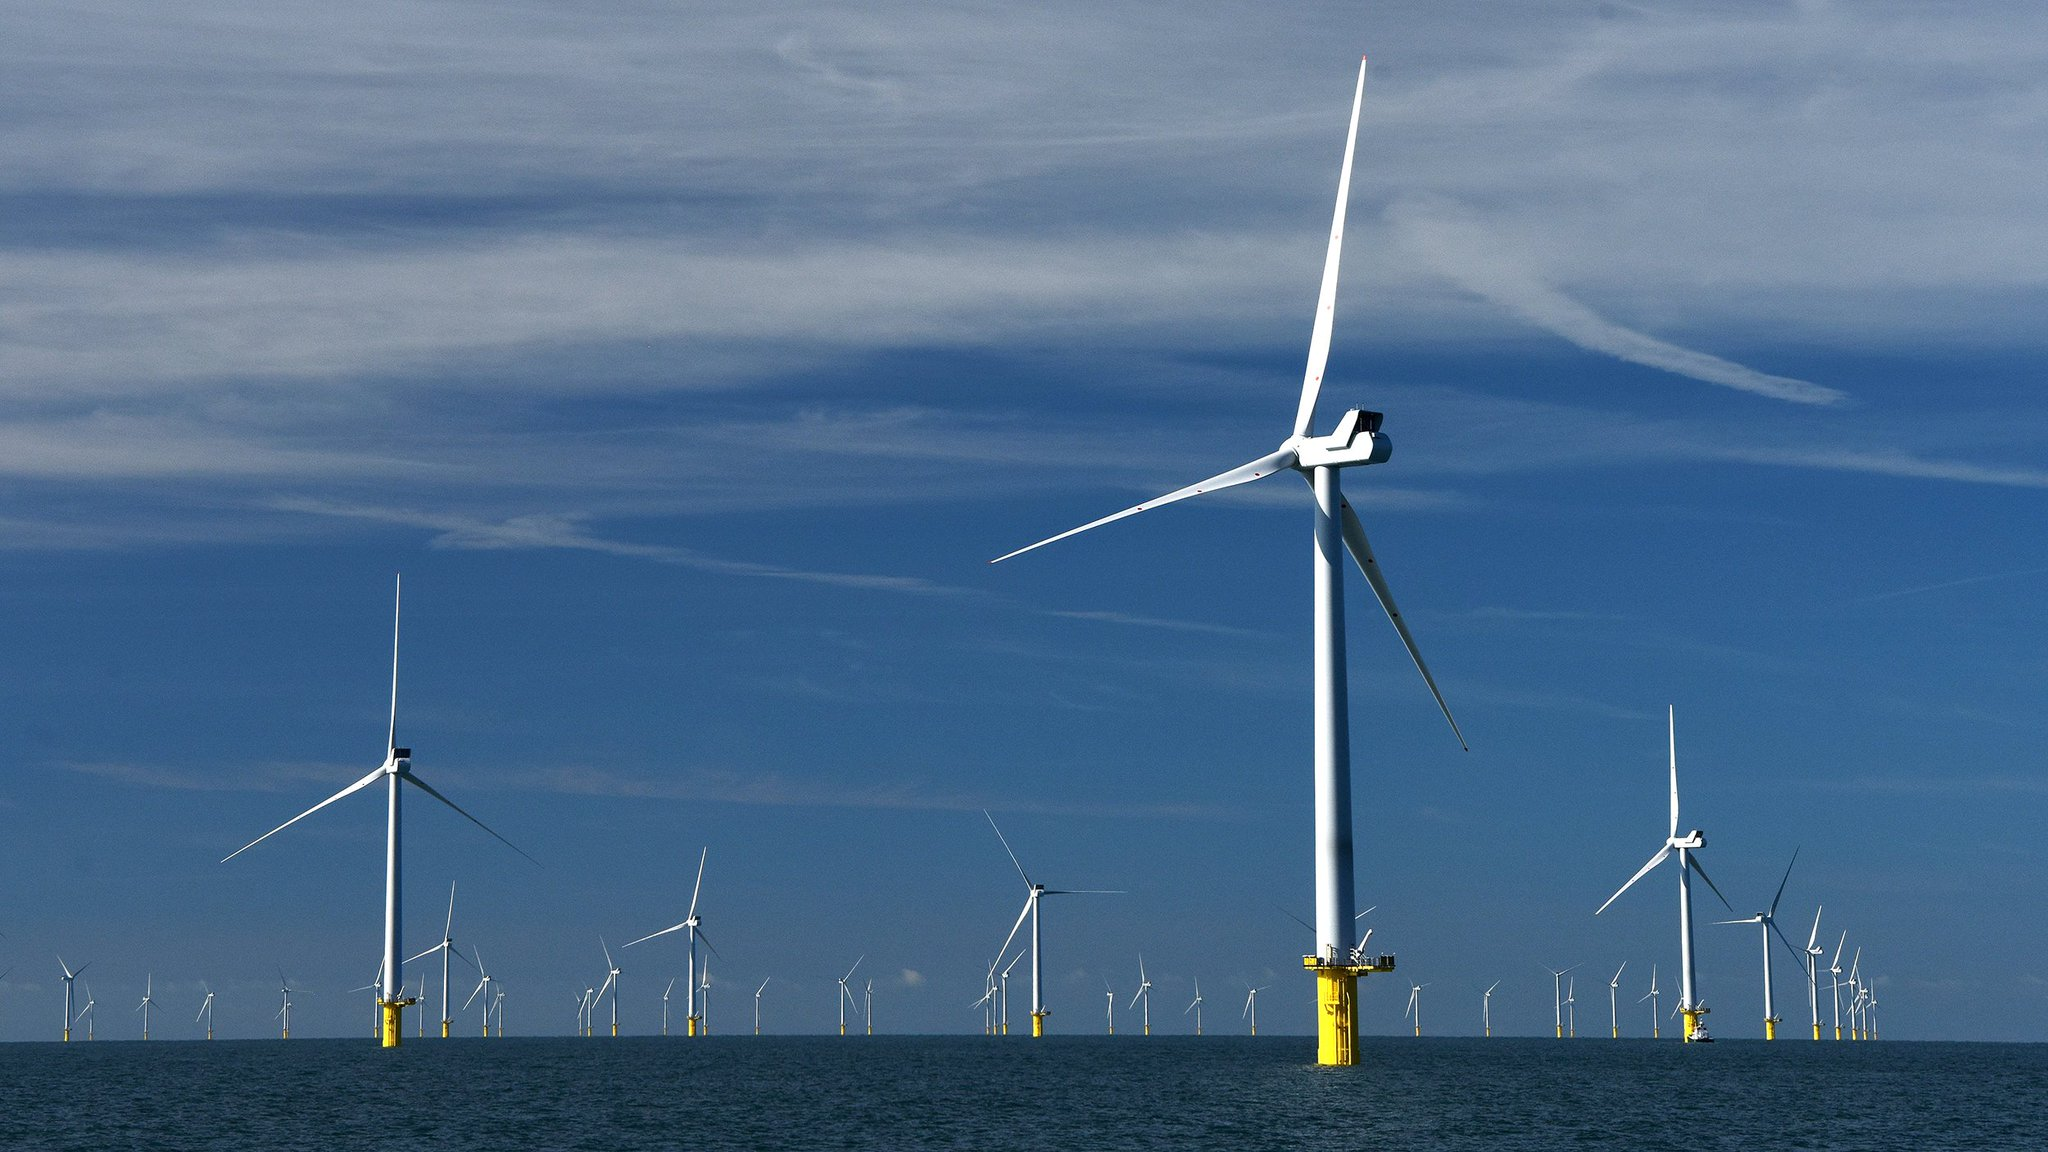 One giant wind farm could power the entire planet https://t.co/J7MP4Xgepk via @NBCNewsMACH https://t.co/JBl31GFXsm